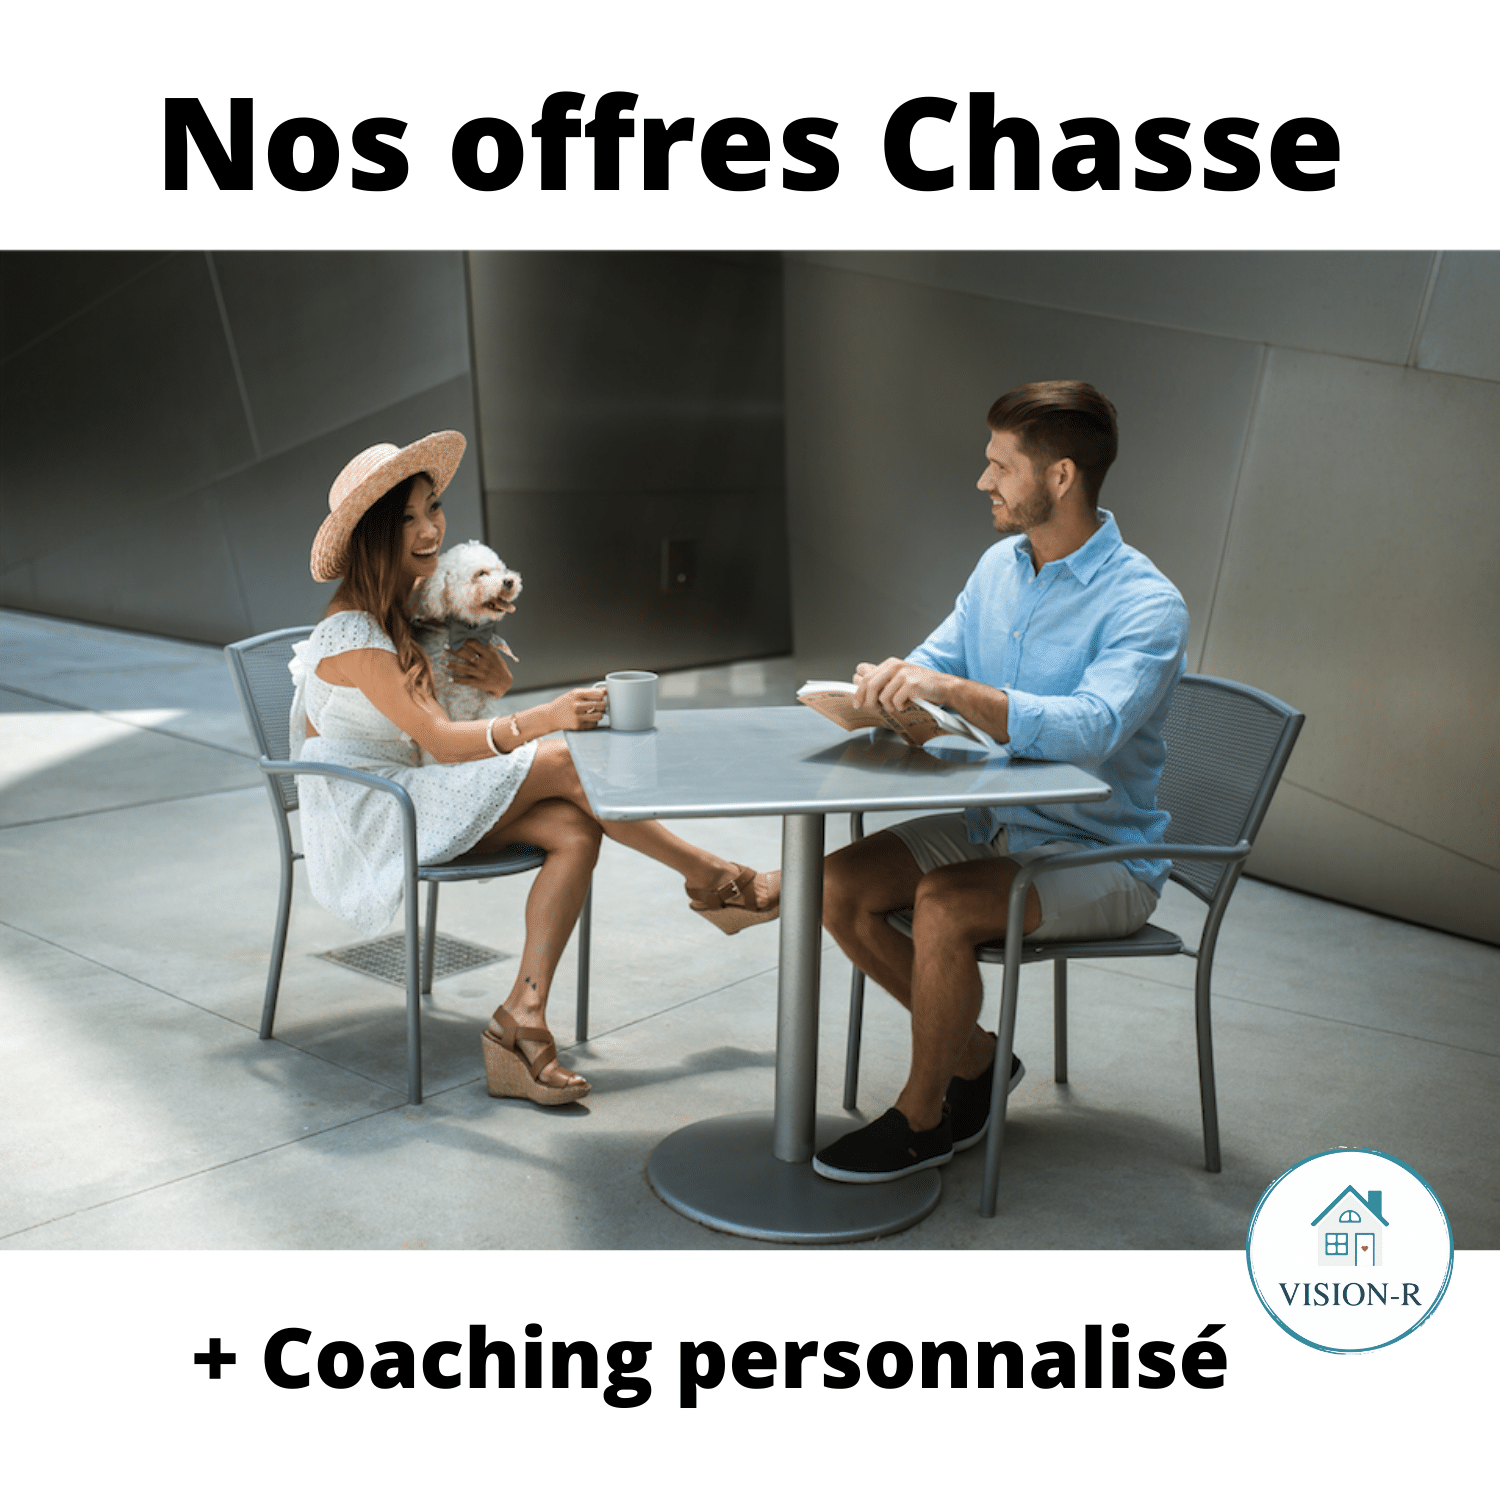 Offres chasse + coaching